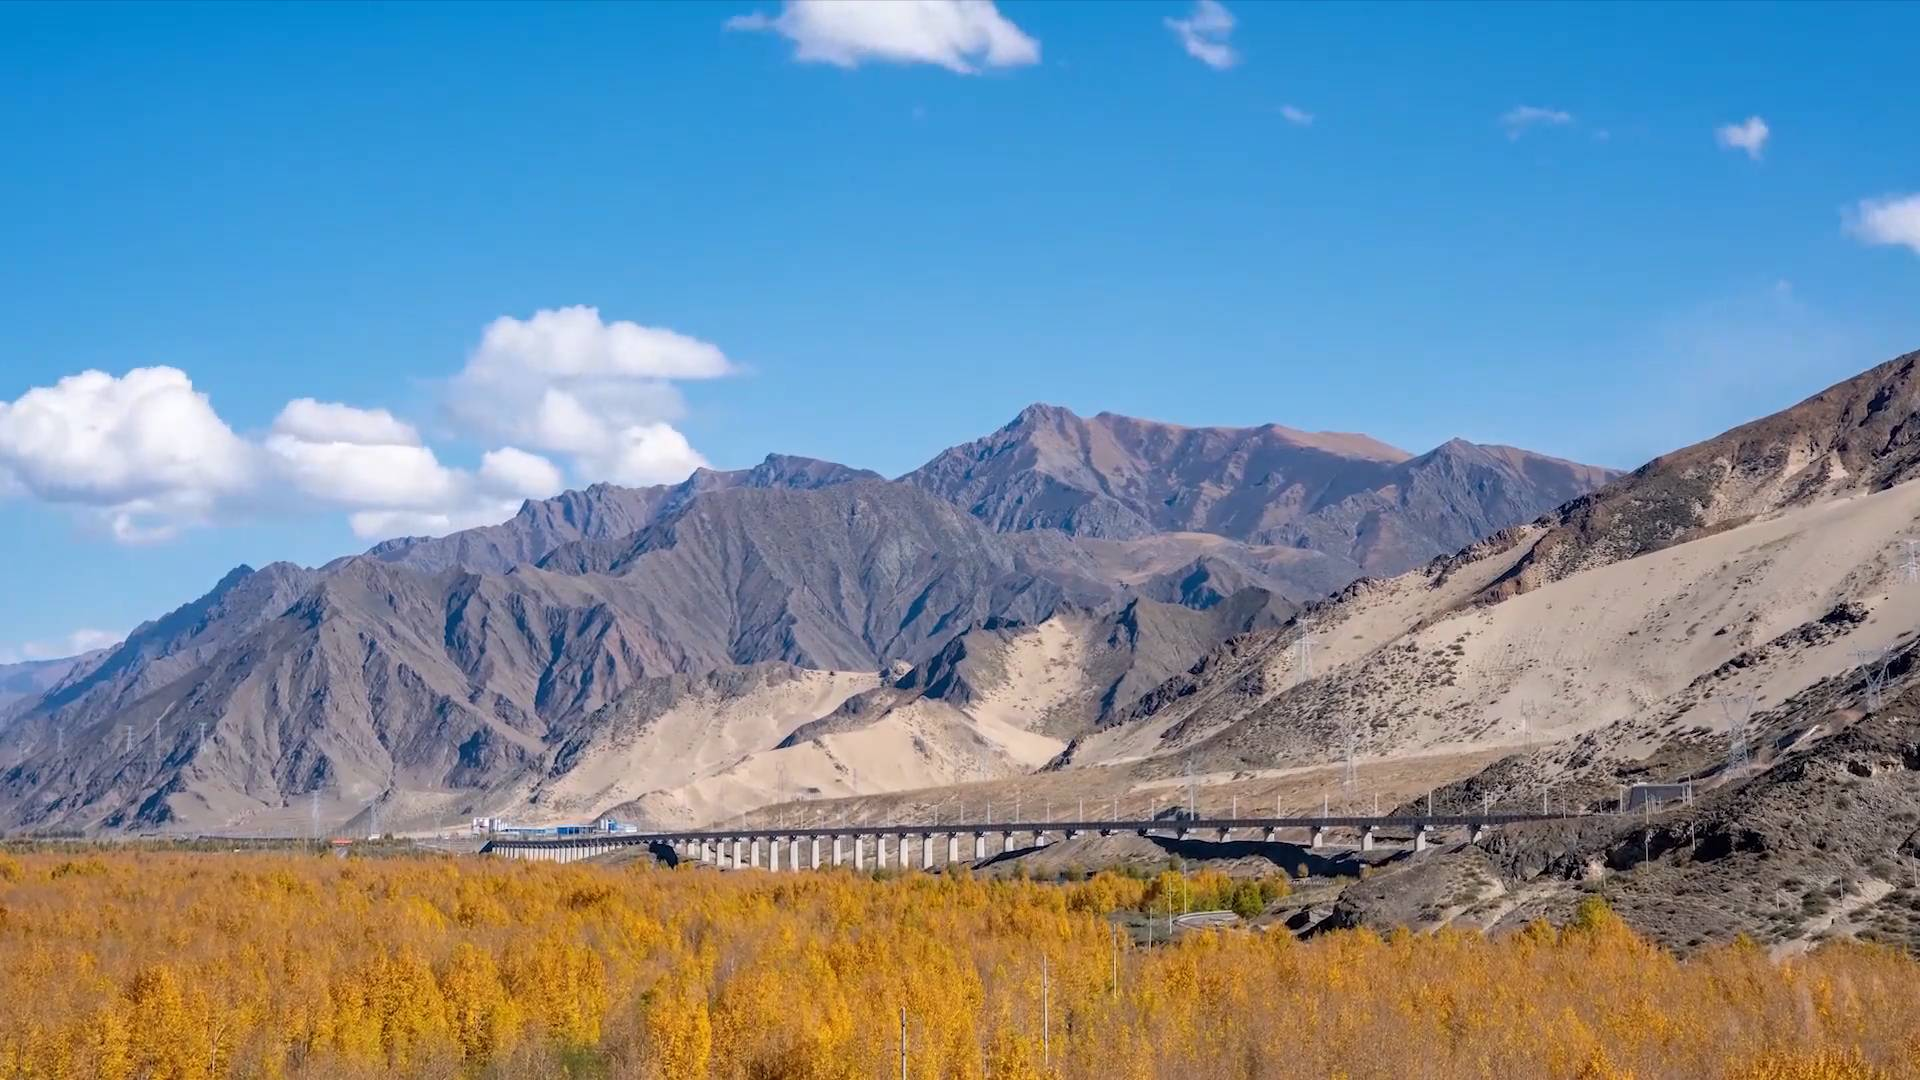 Workers overcome difficulties to build Tibet's 1st electric railway